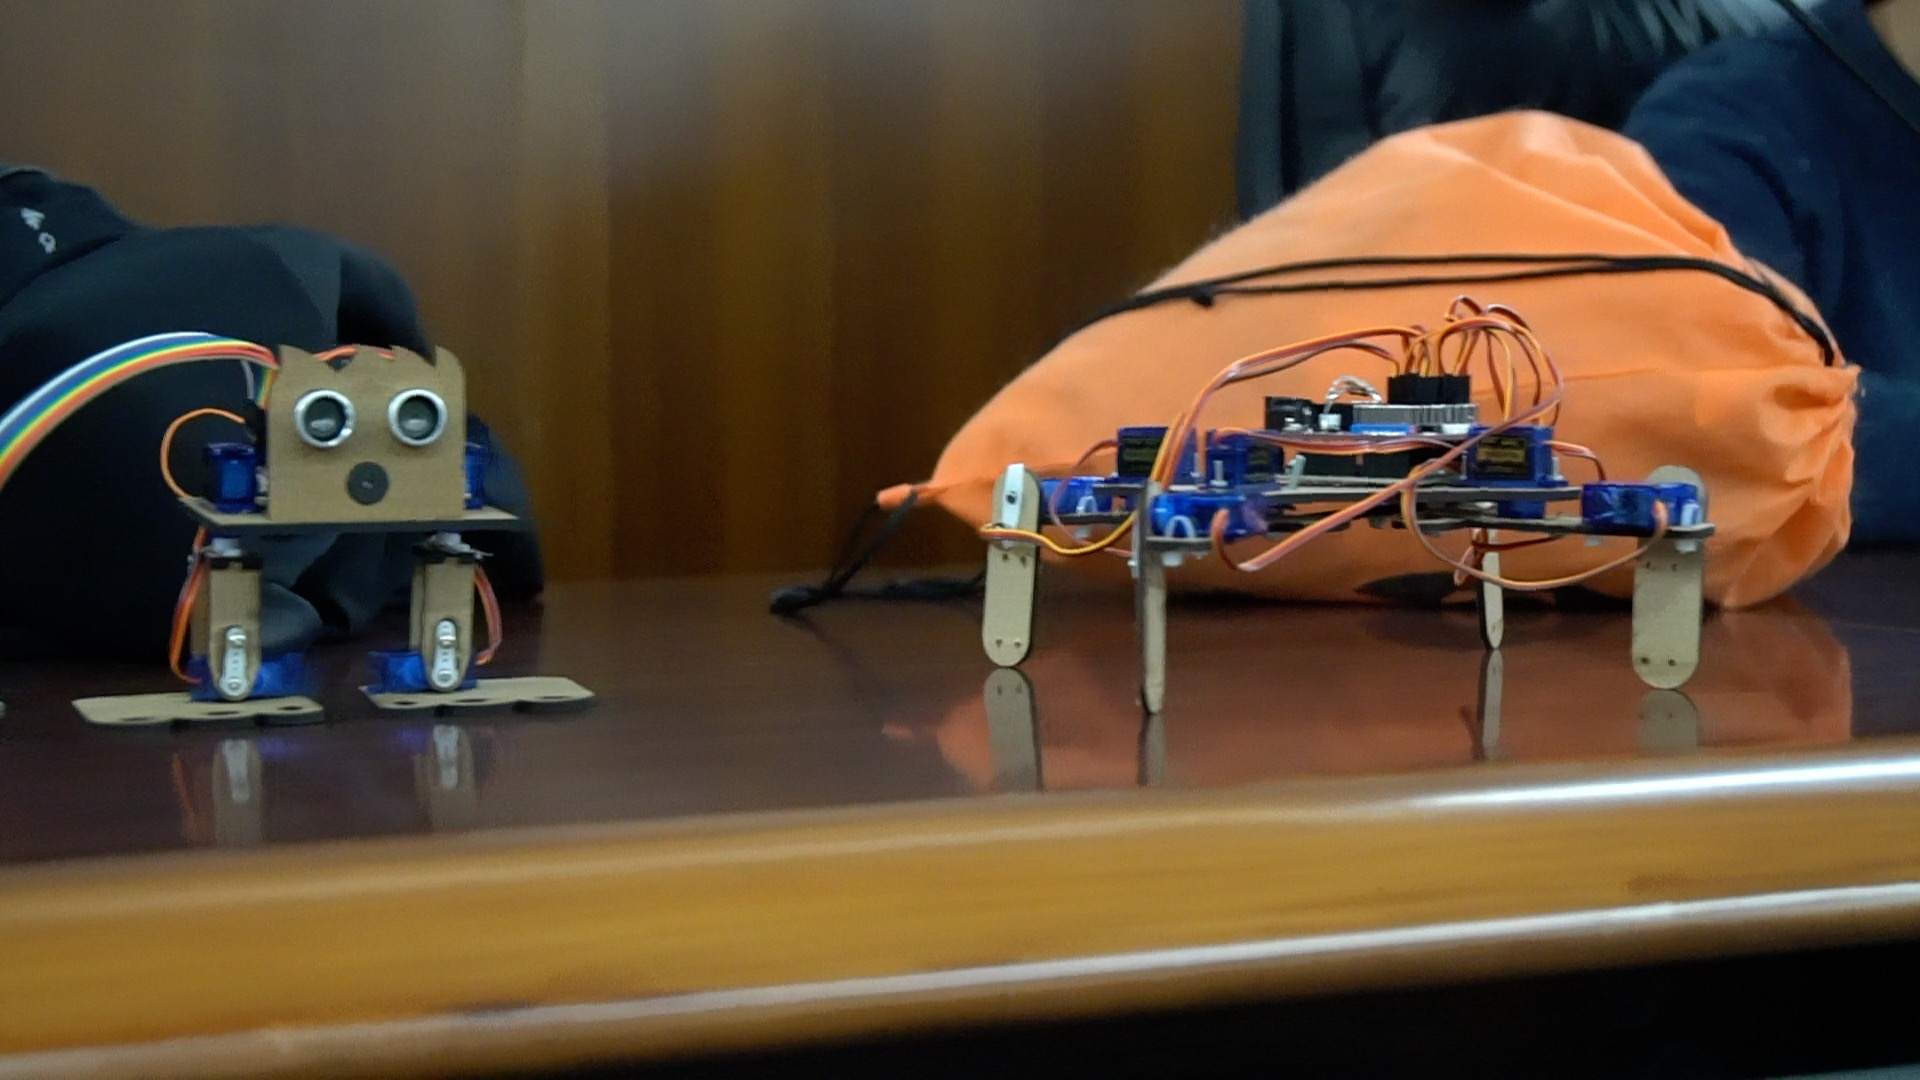 the robot prototypes ready for the presentation